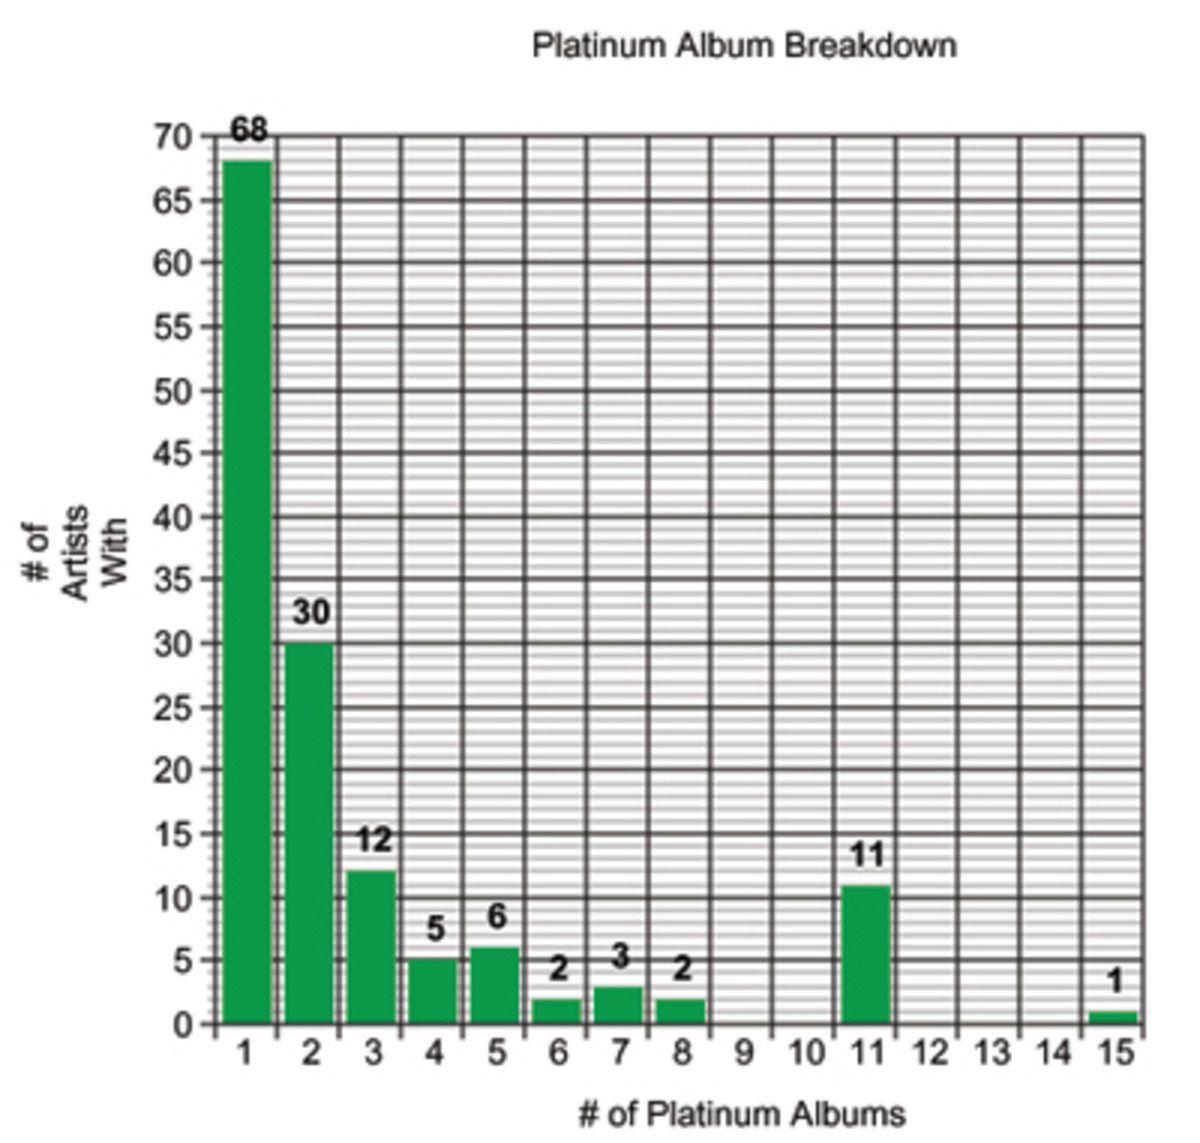 Every Rapper With a Platinum Album in Hip-Hop History - DJBooth